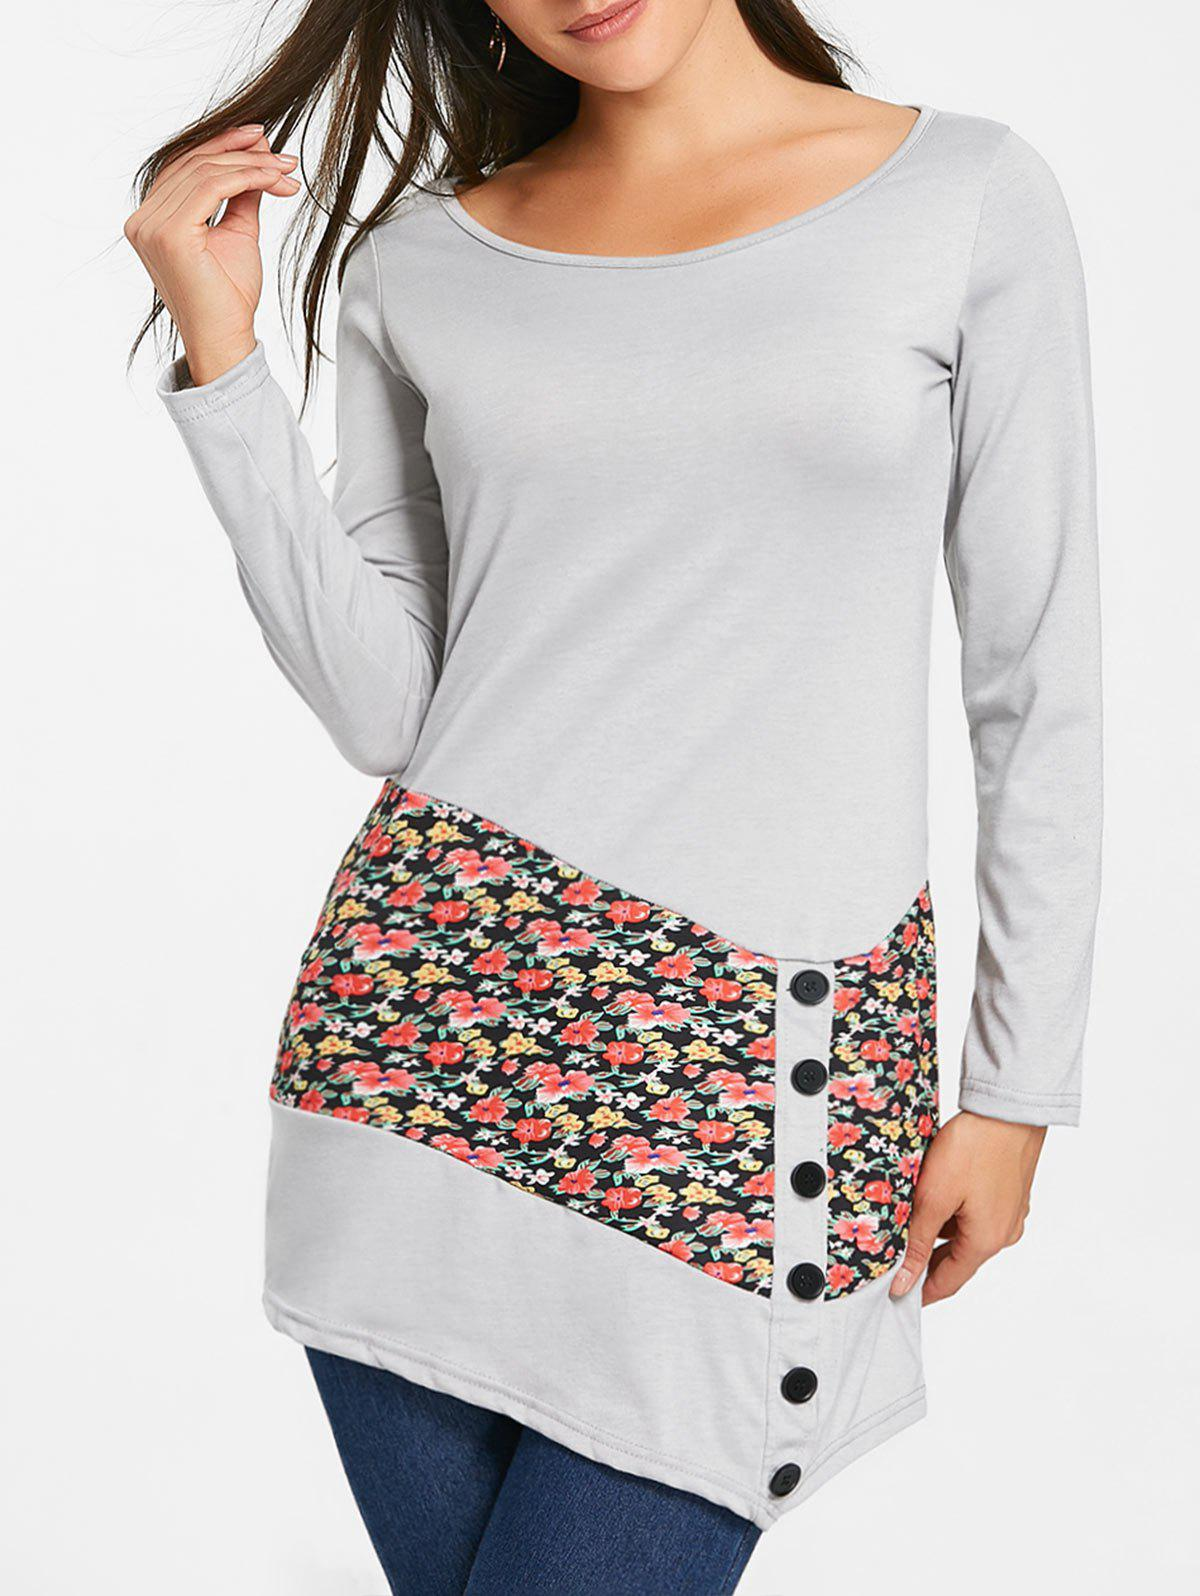 Unique Floral Panel Buttons Long Sleeve Tunic Top